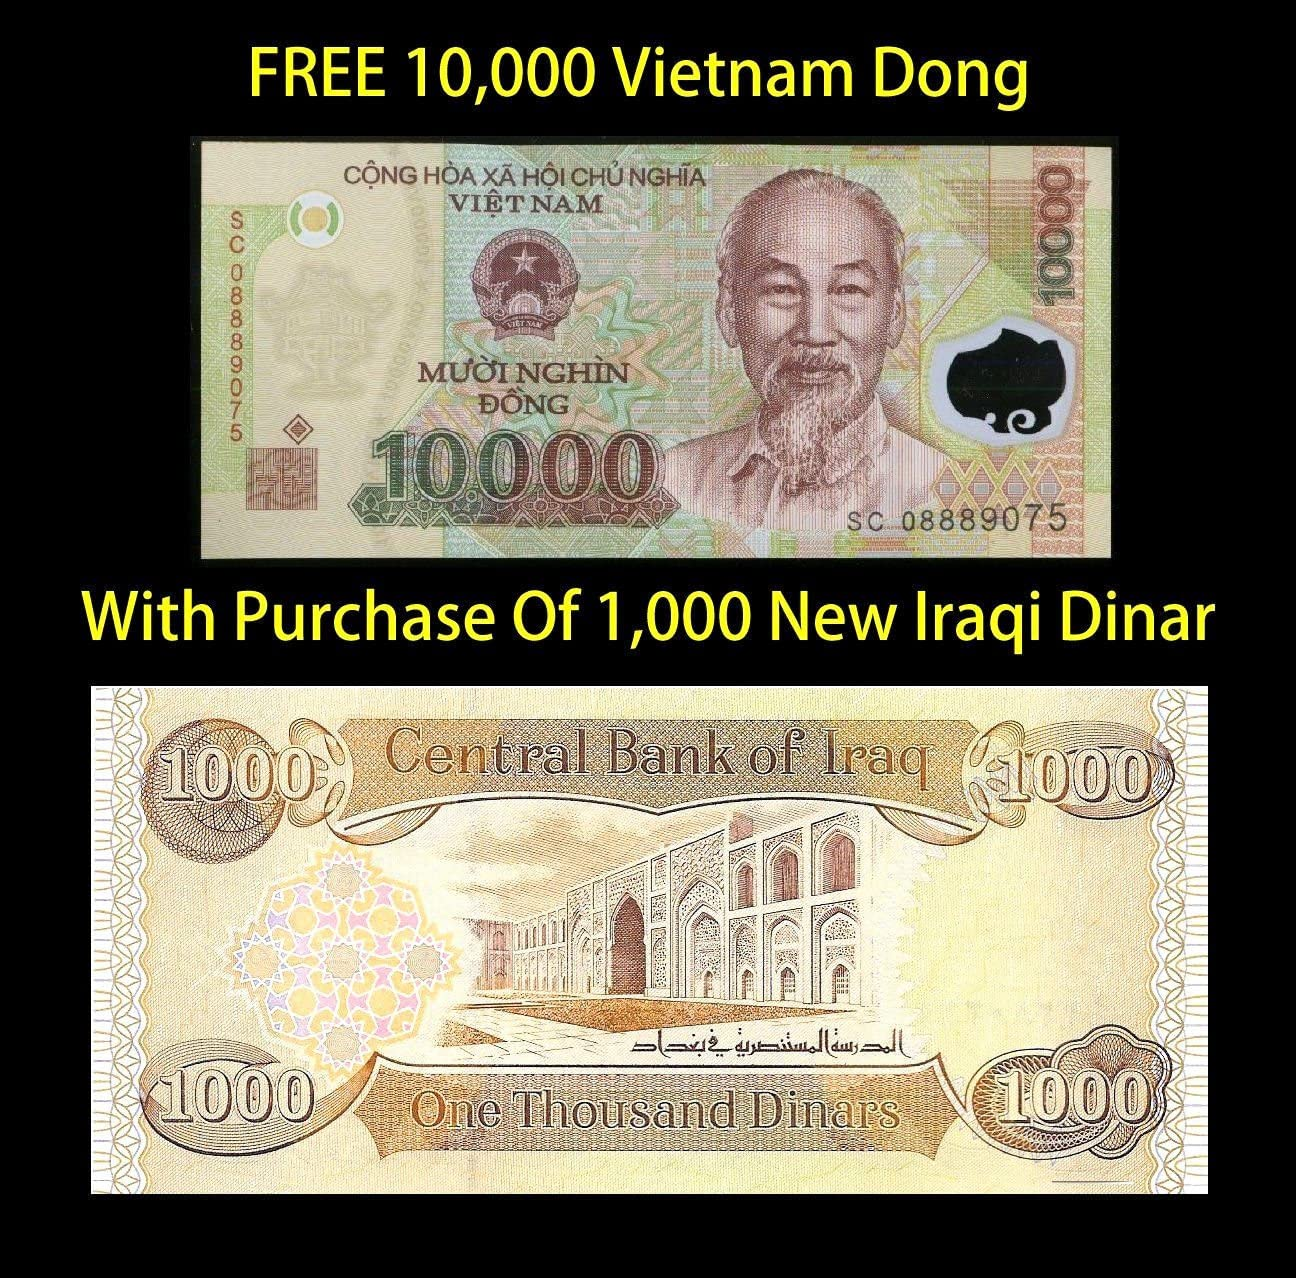 10000 20 x 10,000 UNC VND 1//5th Million Vietnam Dong Banknotes Currency Lot